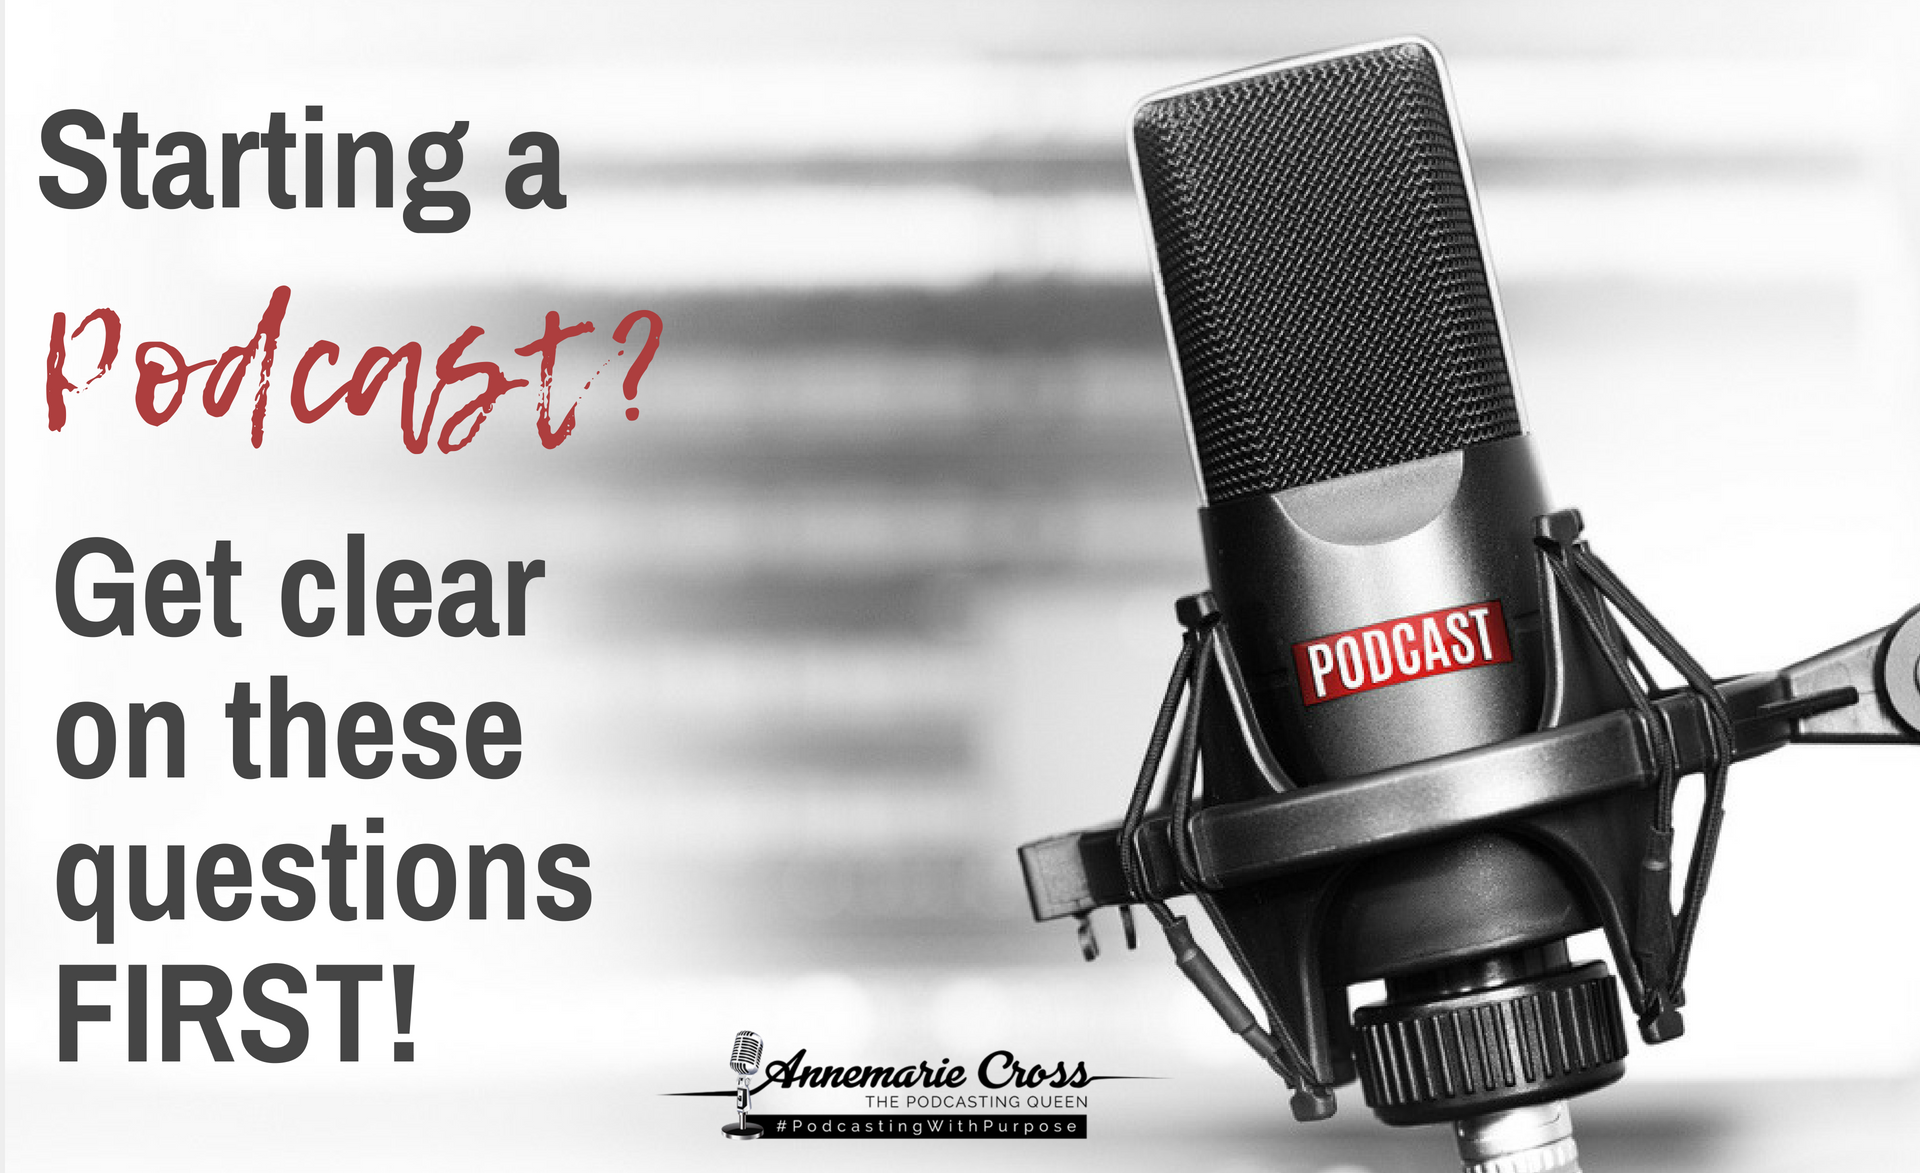 Starting a podcast? Get clear on these questions FIRST to profit from your podcast.